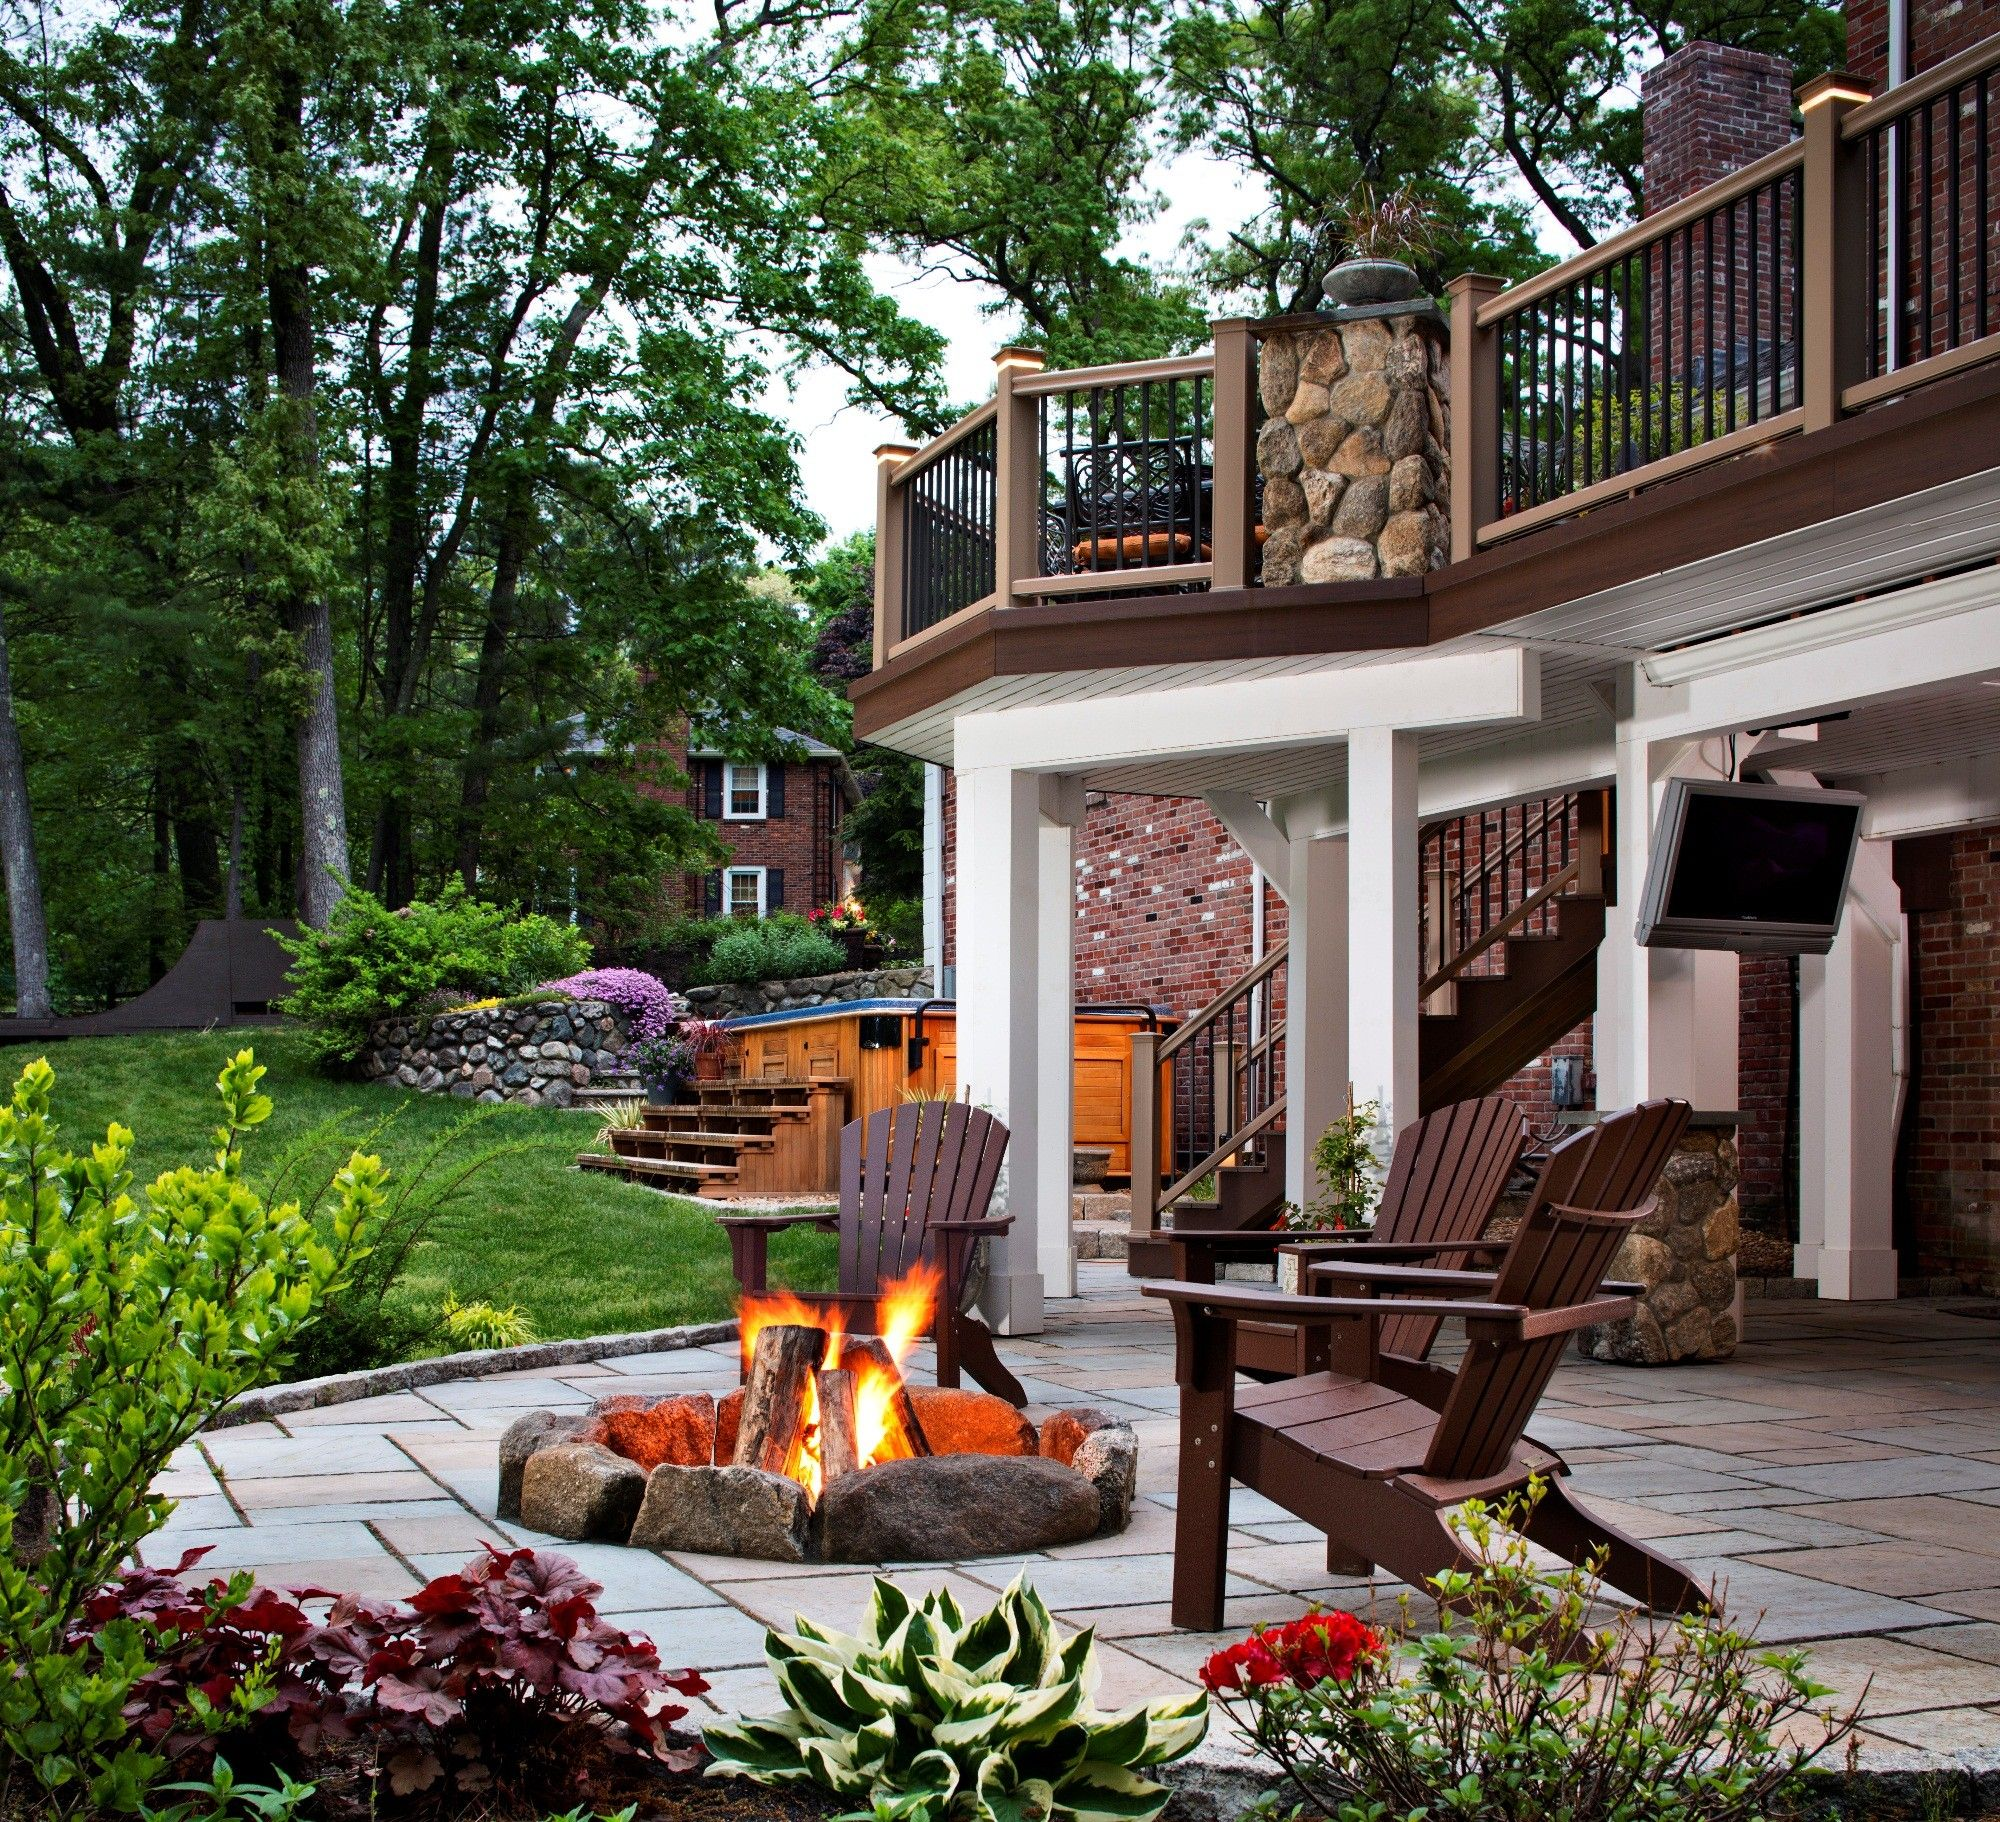 35 Cool Outdoor Deck Designs: Decorating, Great Outdoor Patio Ideas With Fire Pit Area